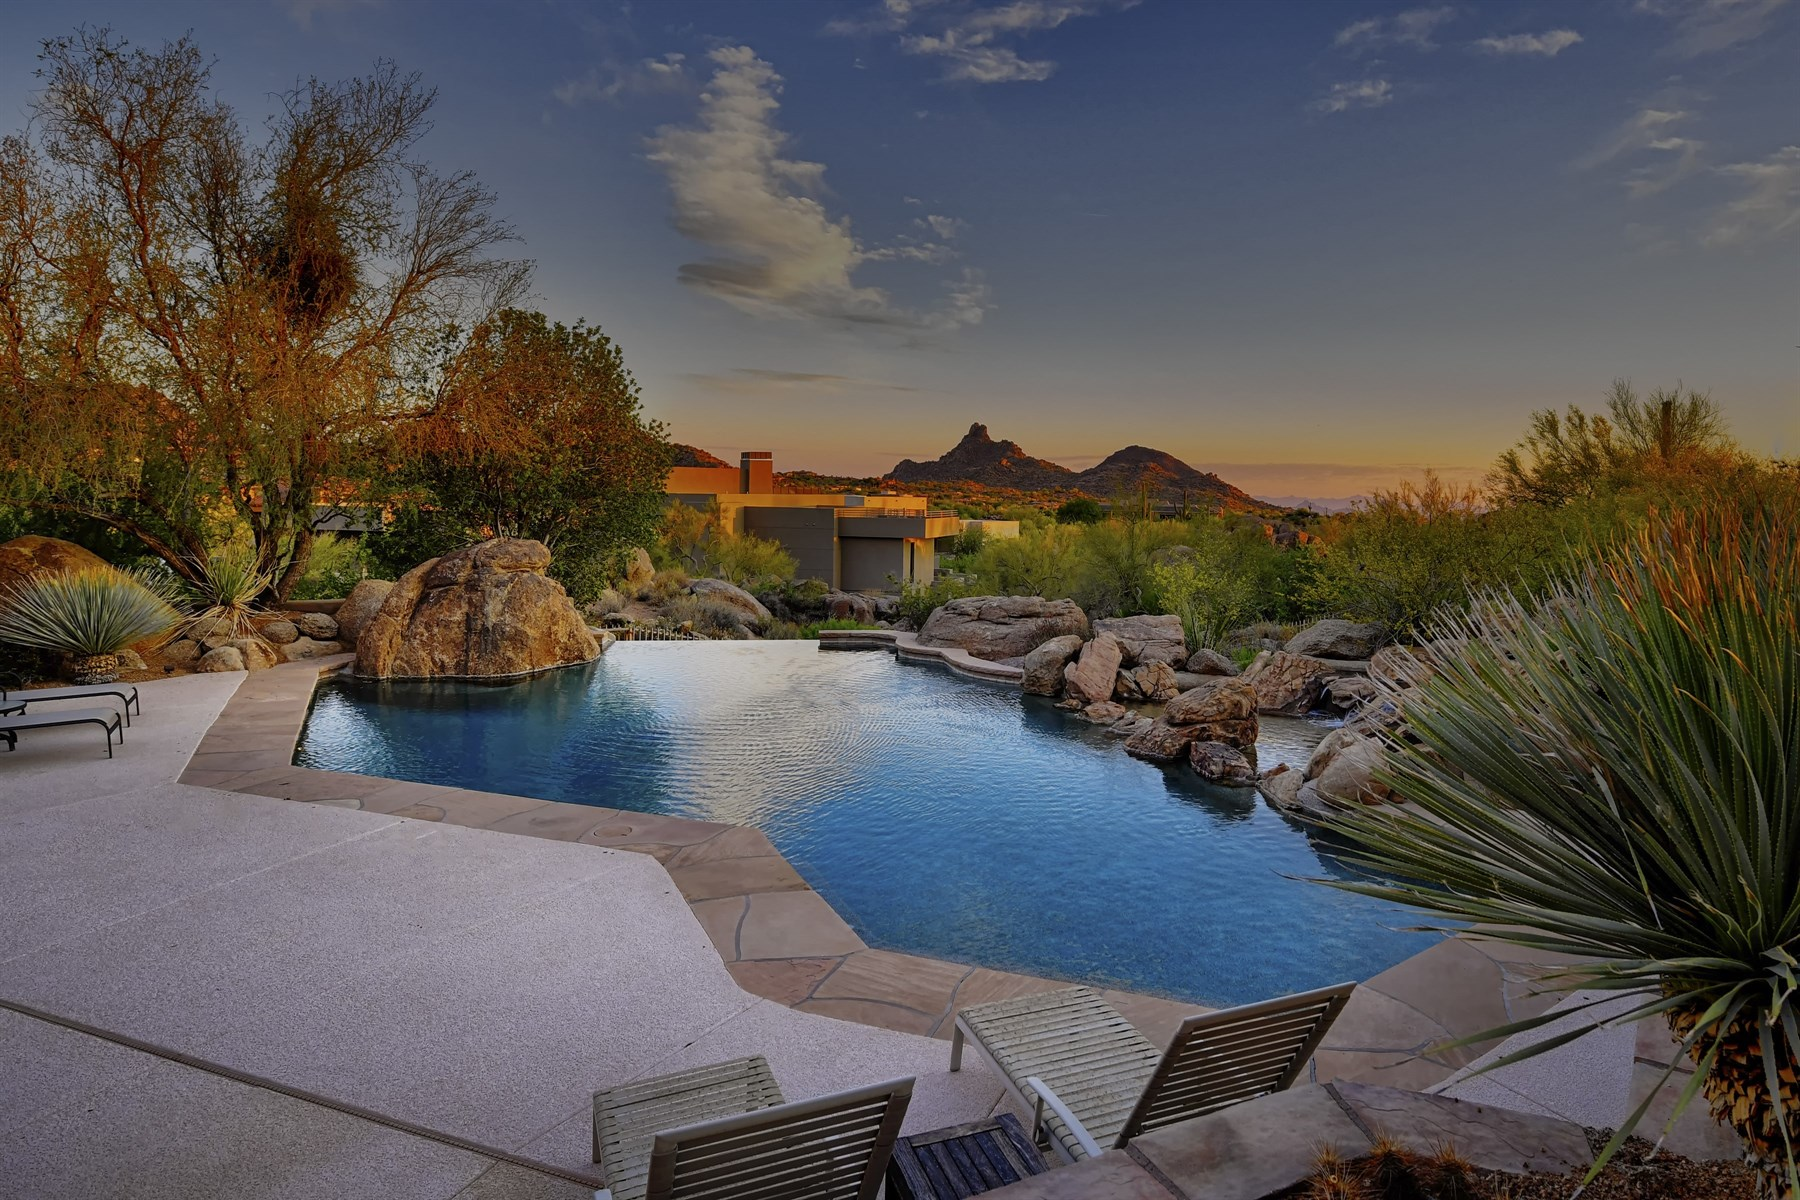 一戸建て のために 売買 アット Distinctive soft contemporary with breathtaking views 10411 E Balancing Rock Rd Scottsdale, アリゾナ, 85262 アメリカ合衆国